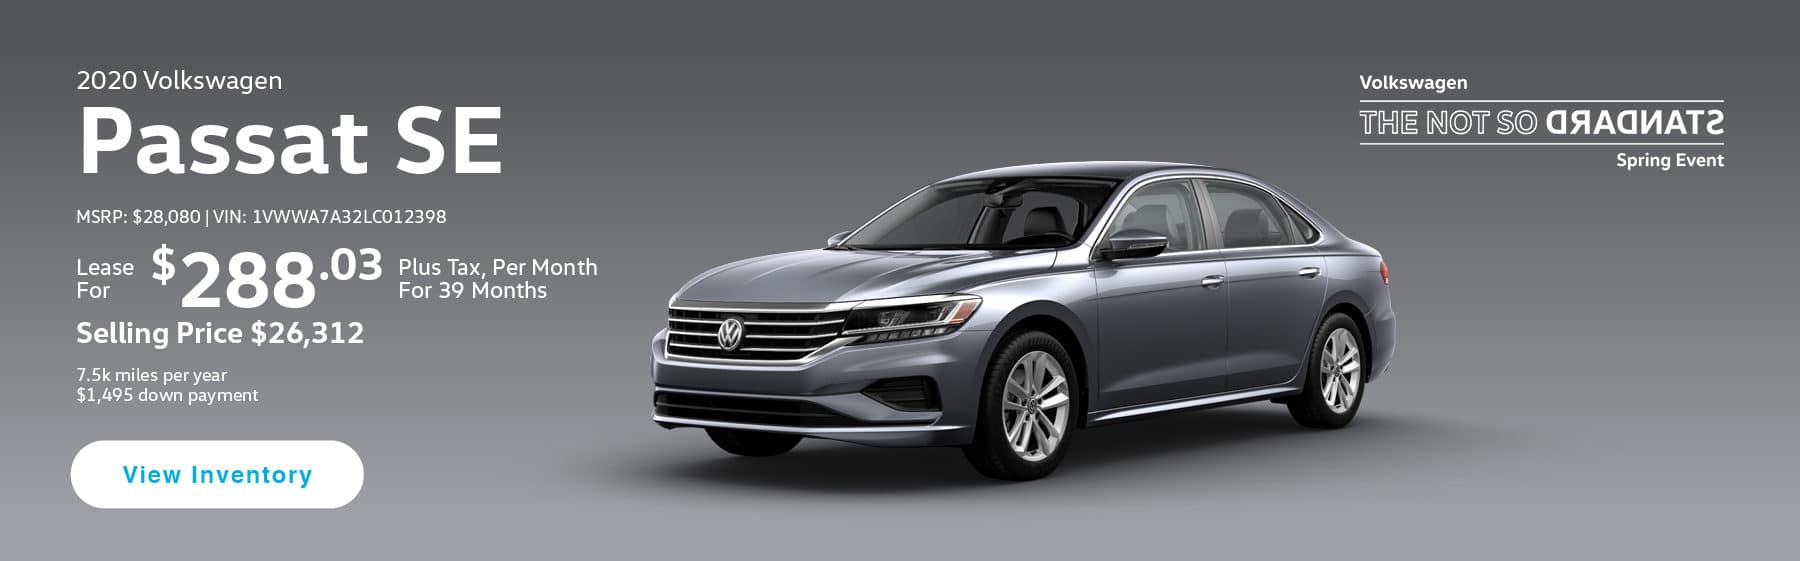 Lease the 2020 Passat SE for $288.03 per month, plus tax for 39 months.